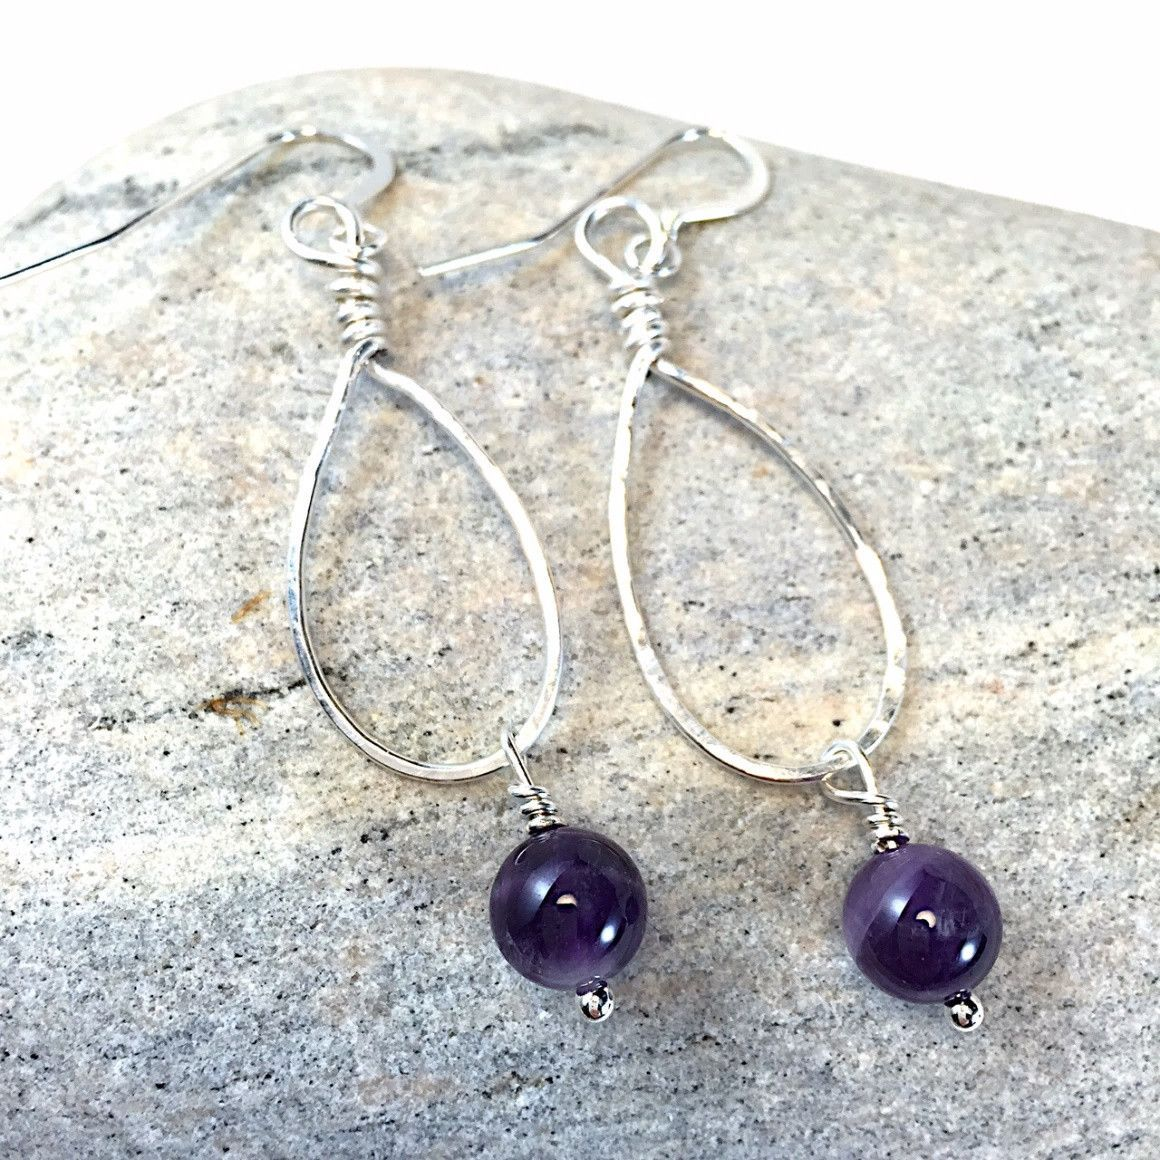 Nature's Bounty Earrings With Amethyst Stones